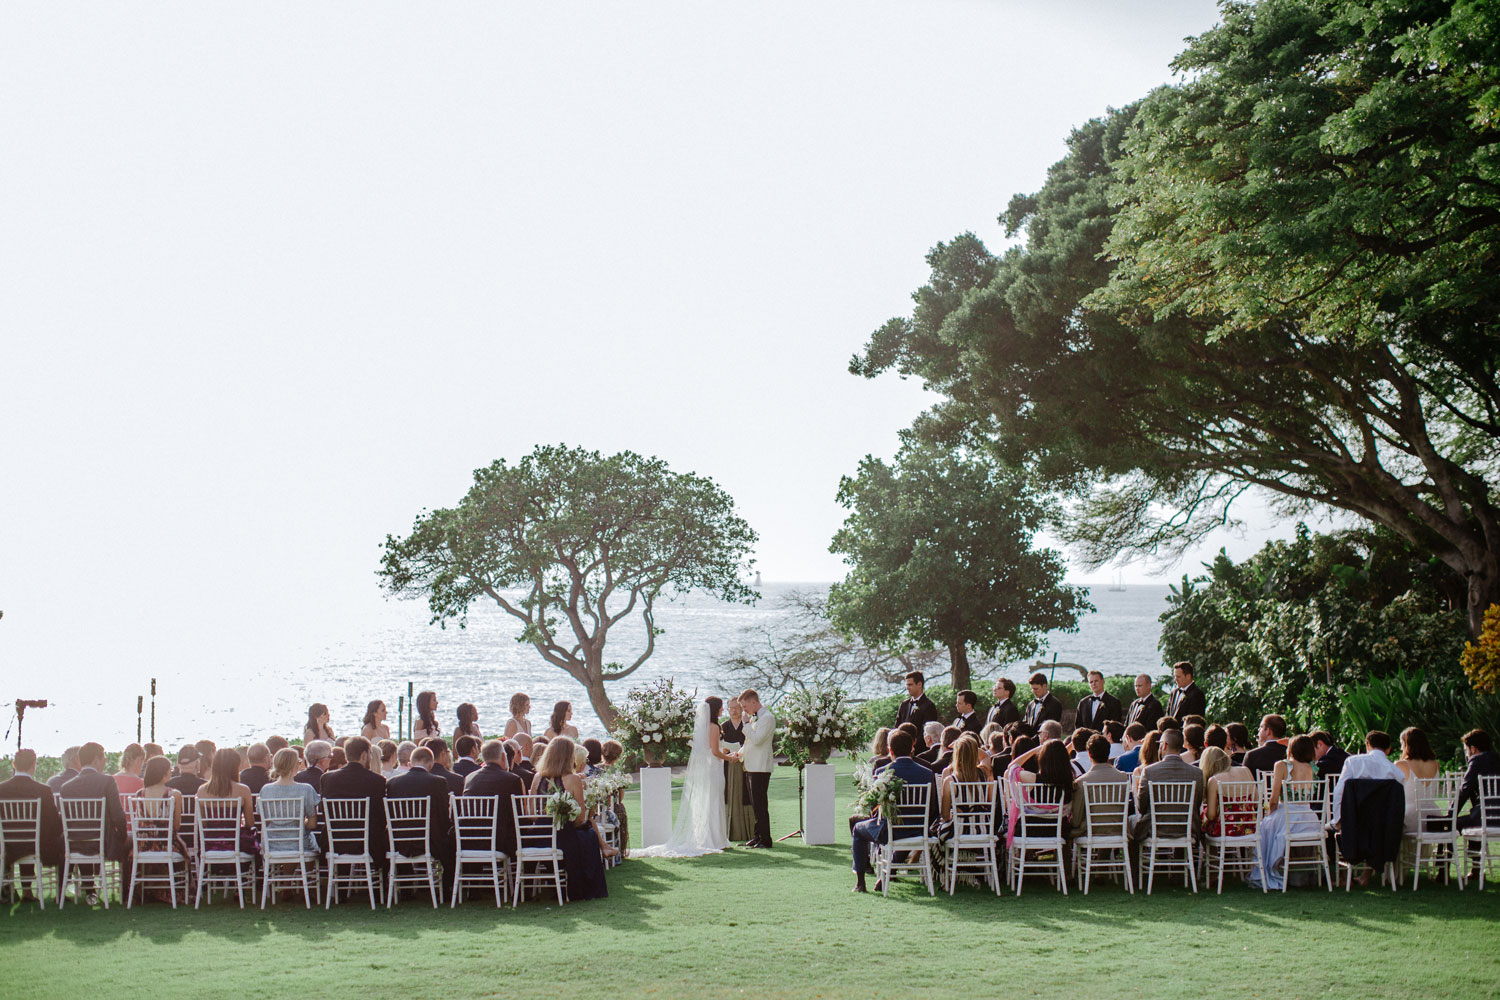 wedding ceremony on lawn in maui overlooking the ocean